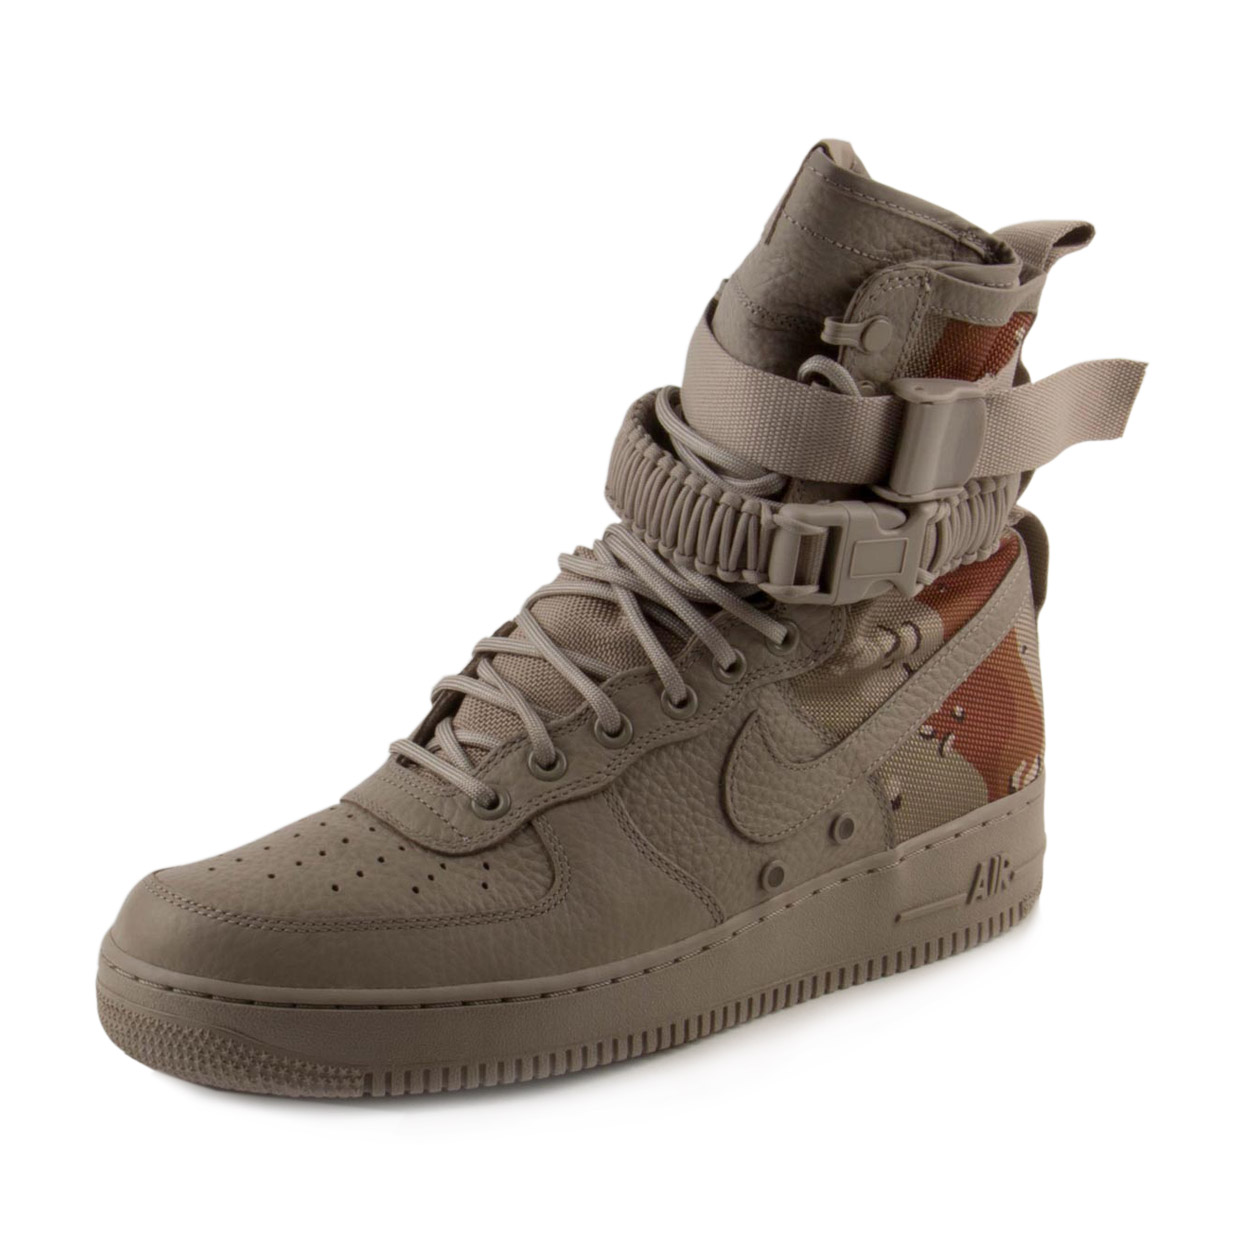 Nike Special Field Air Force 1 Desert Camo 864024 202 Chino/Chino-Classic Stone Mens sz 10.5us